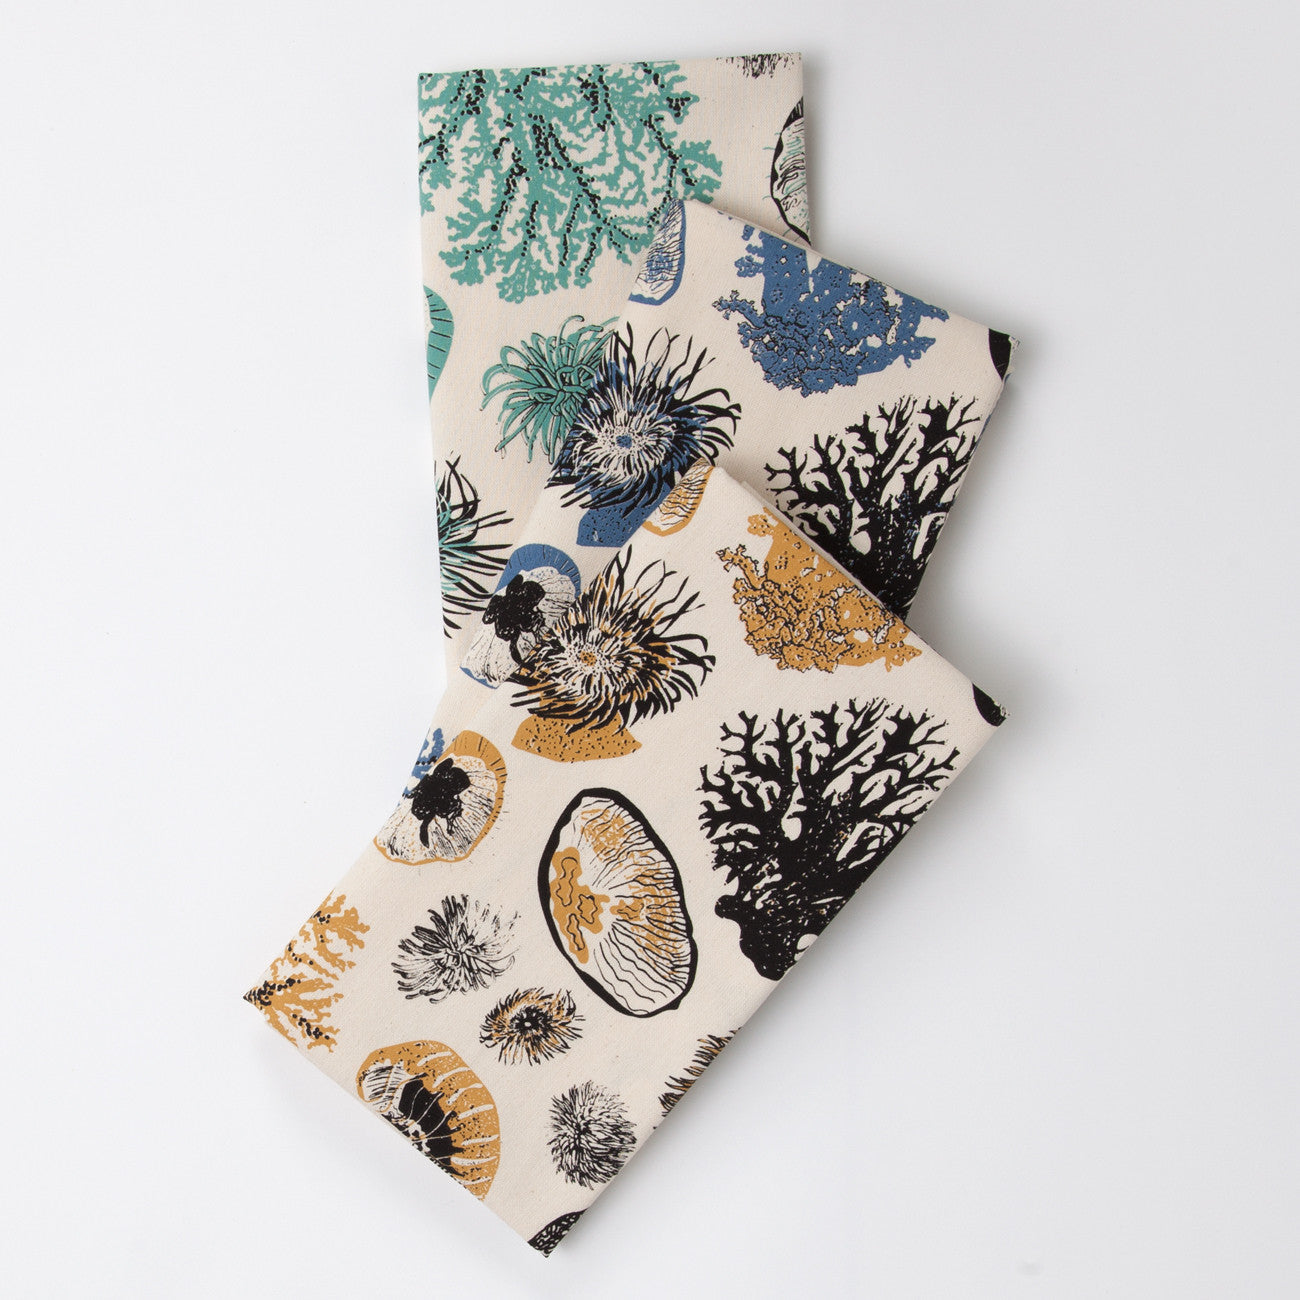 products/underwater_trio_tea_towel_NO_TAG_North_of_West_SS16_92e4401a-7a22-4935-9054-fa692ae68bba.jpg